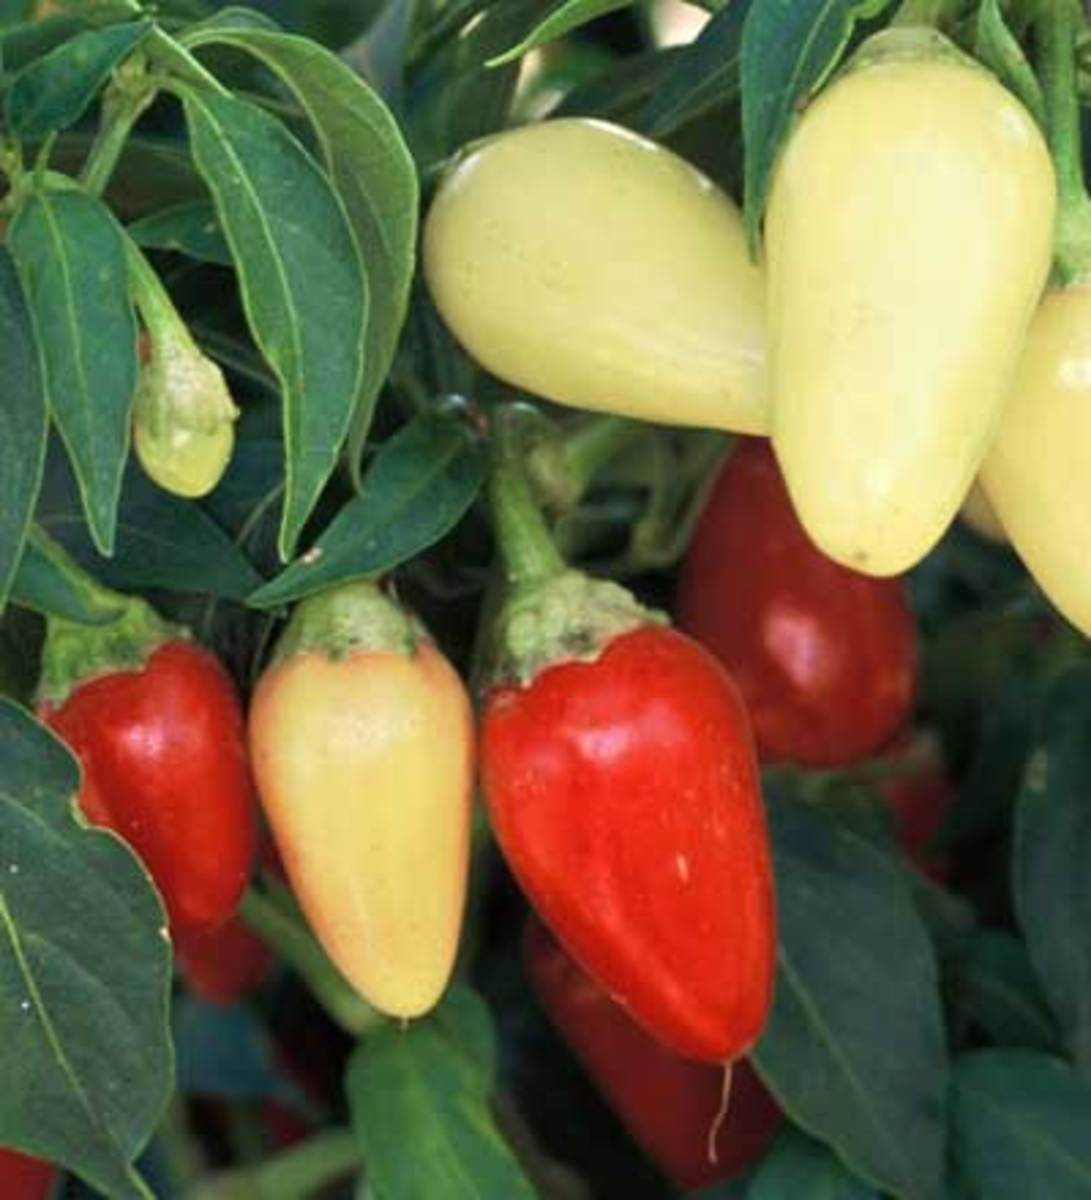 Cascabella, a favorite for pickling, this pepper is generally used in its yellow stage, but it will turn red when left on the plant. Cone shaped, 1 1/4 inch long peppers range from 1,500 to 4,000 Scoville units.